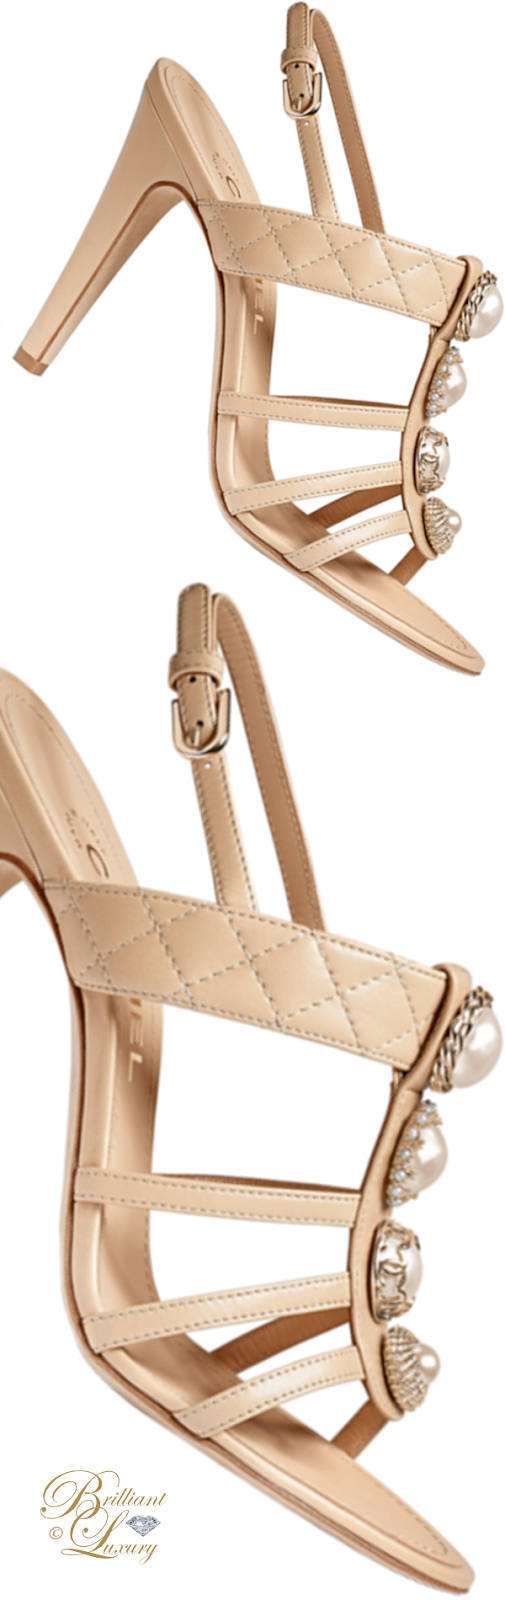 Brilliant Luxury ♦ Chanel lambskin sandals in gold